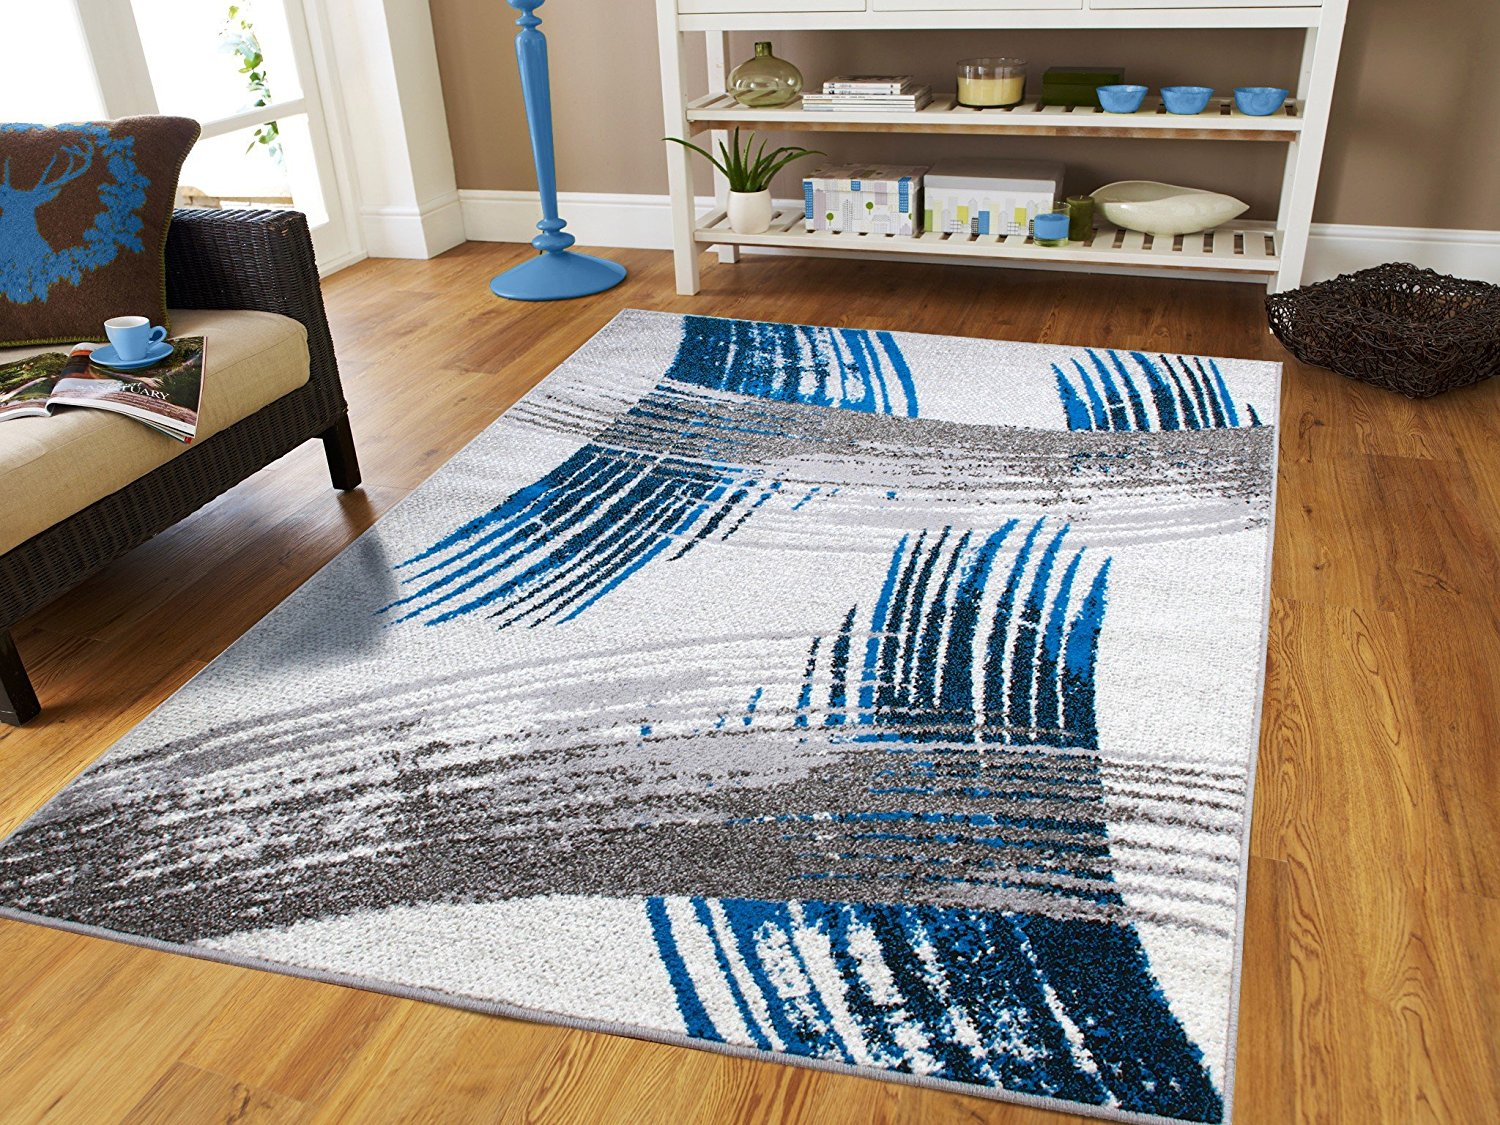 New Fashion Art Collection Contemporary 5x7 Area Rugs Blue Black Cream Grey  Living U0026 Dining Room